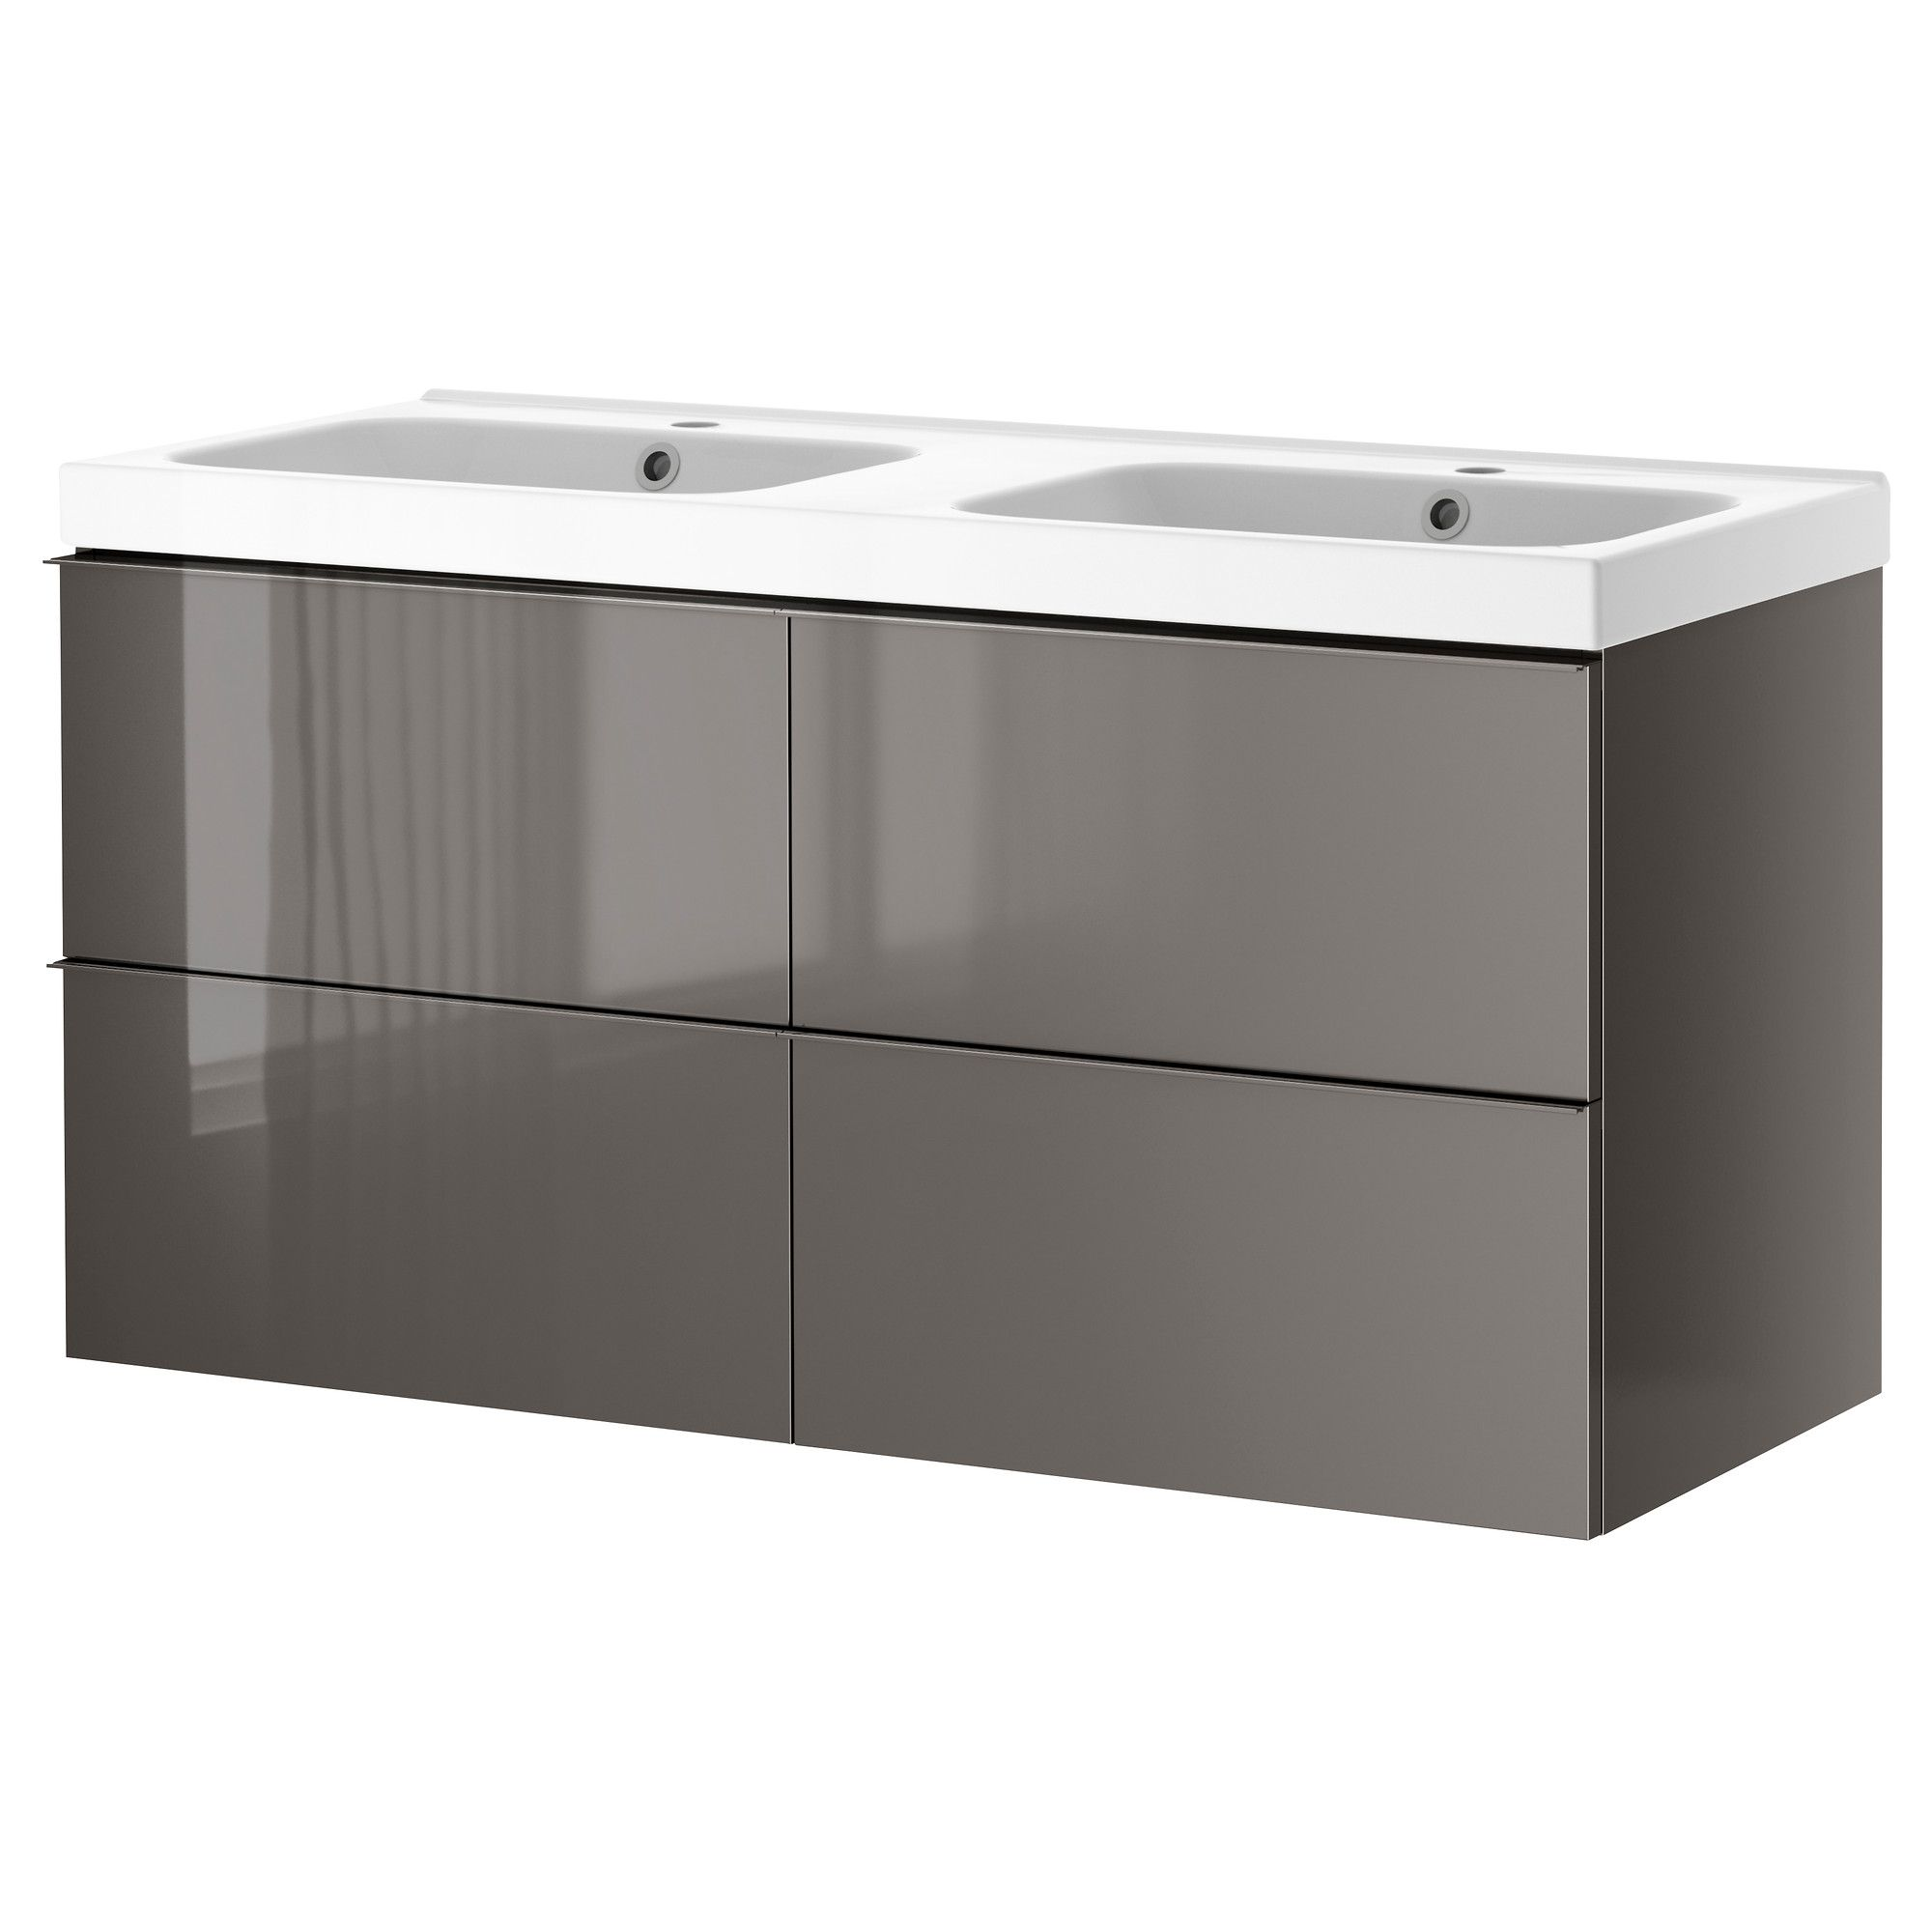 GODMORGON/ODENSVIK Sink cabinet with 4 drawers - high gloss gray ...